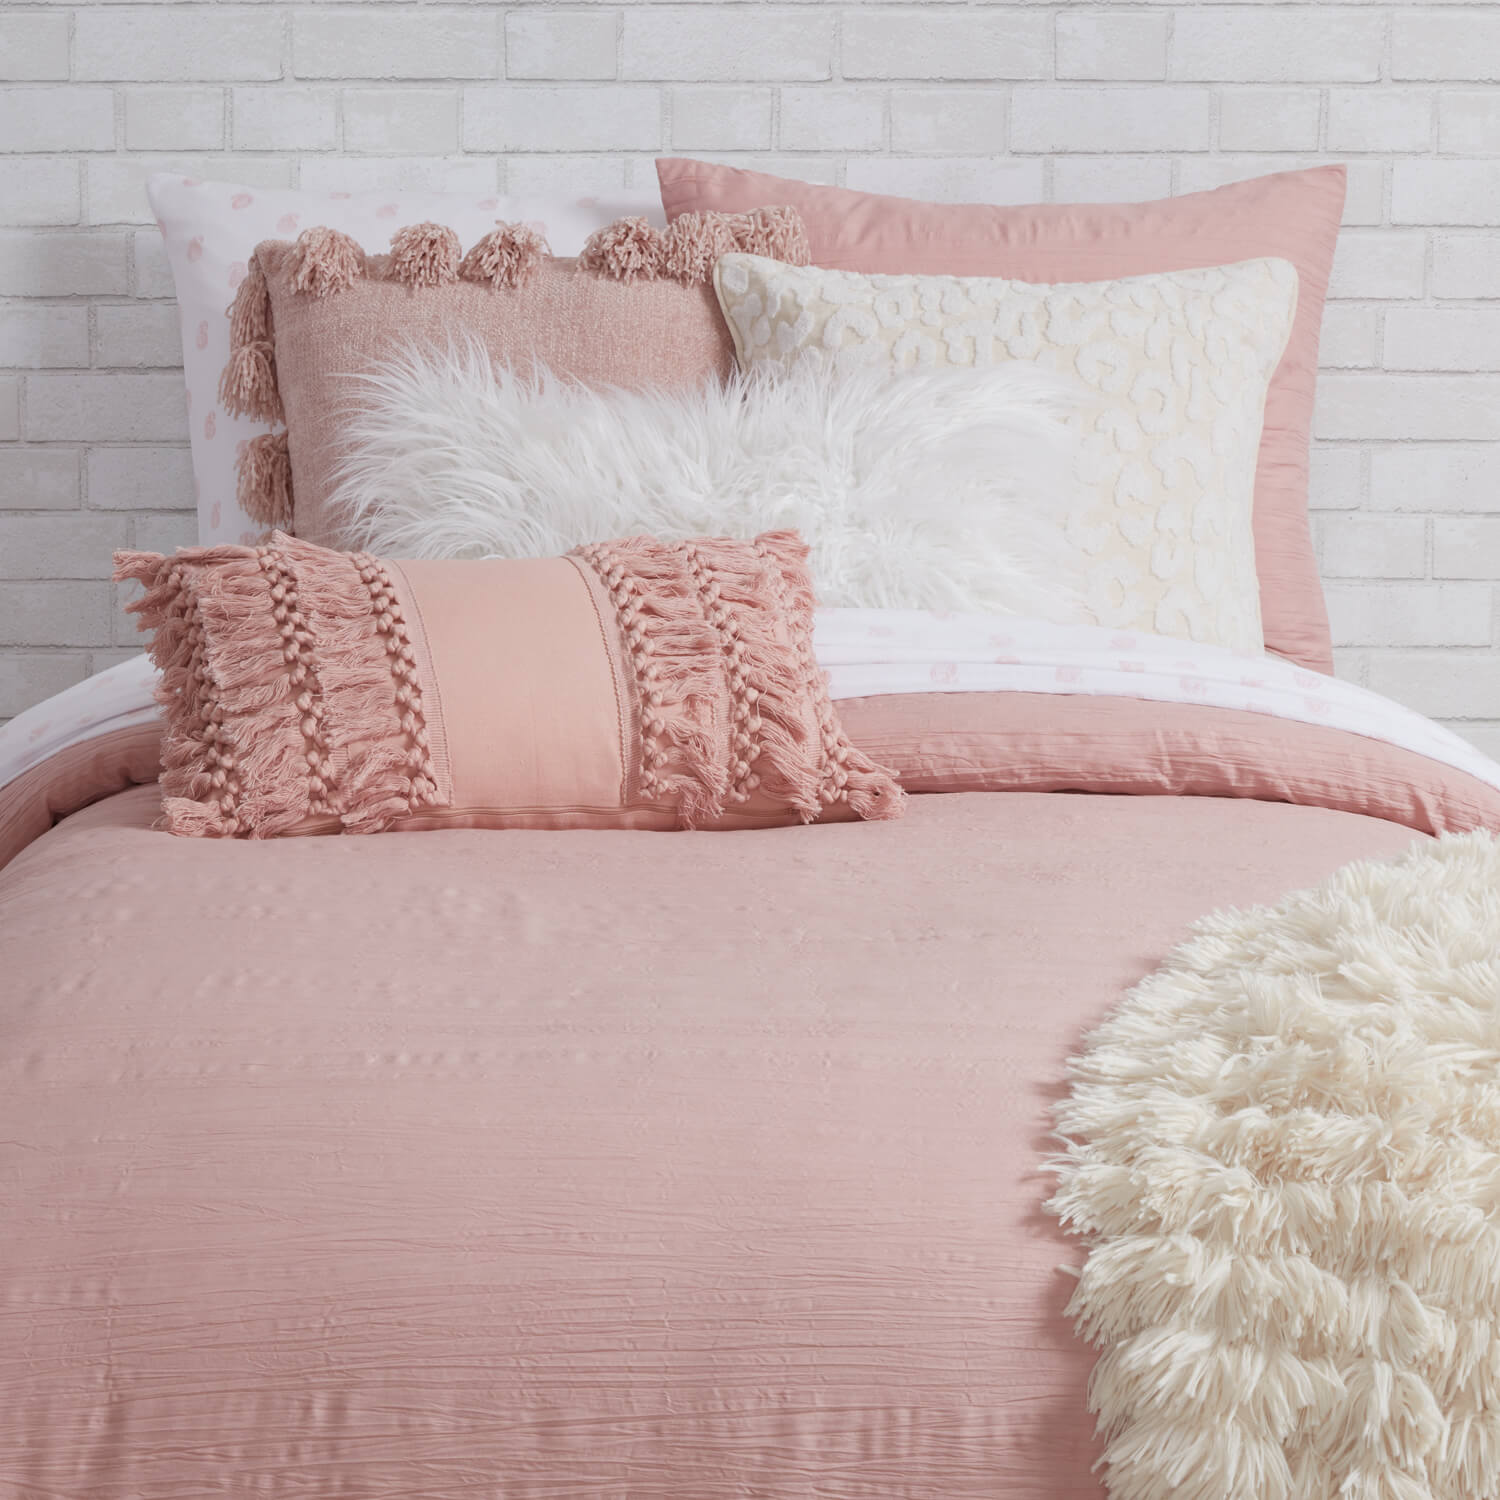 Dusty Rose Collection Dormify